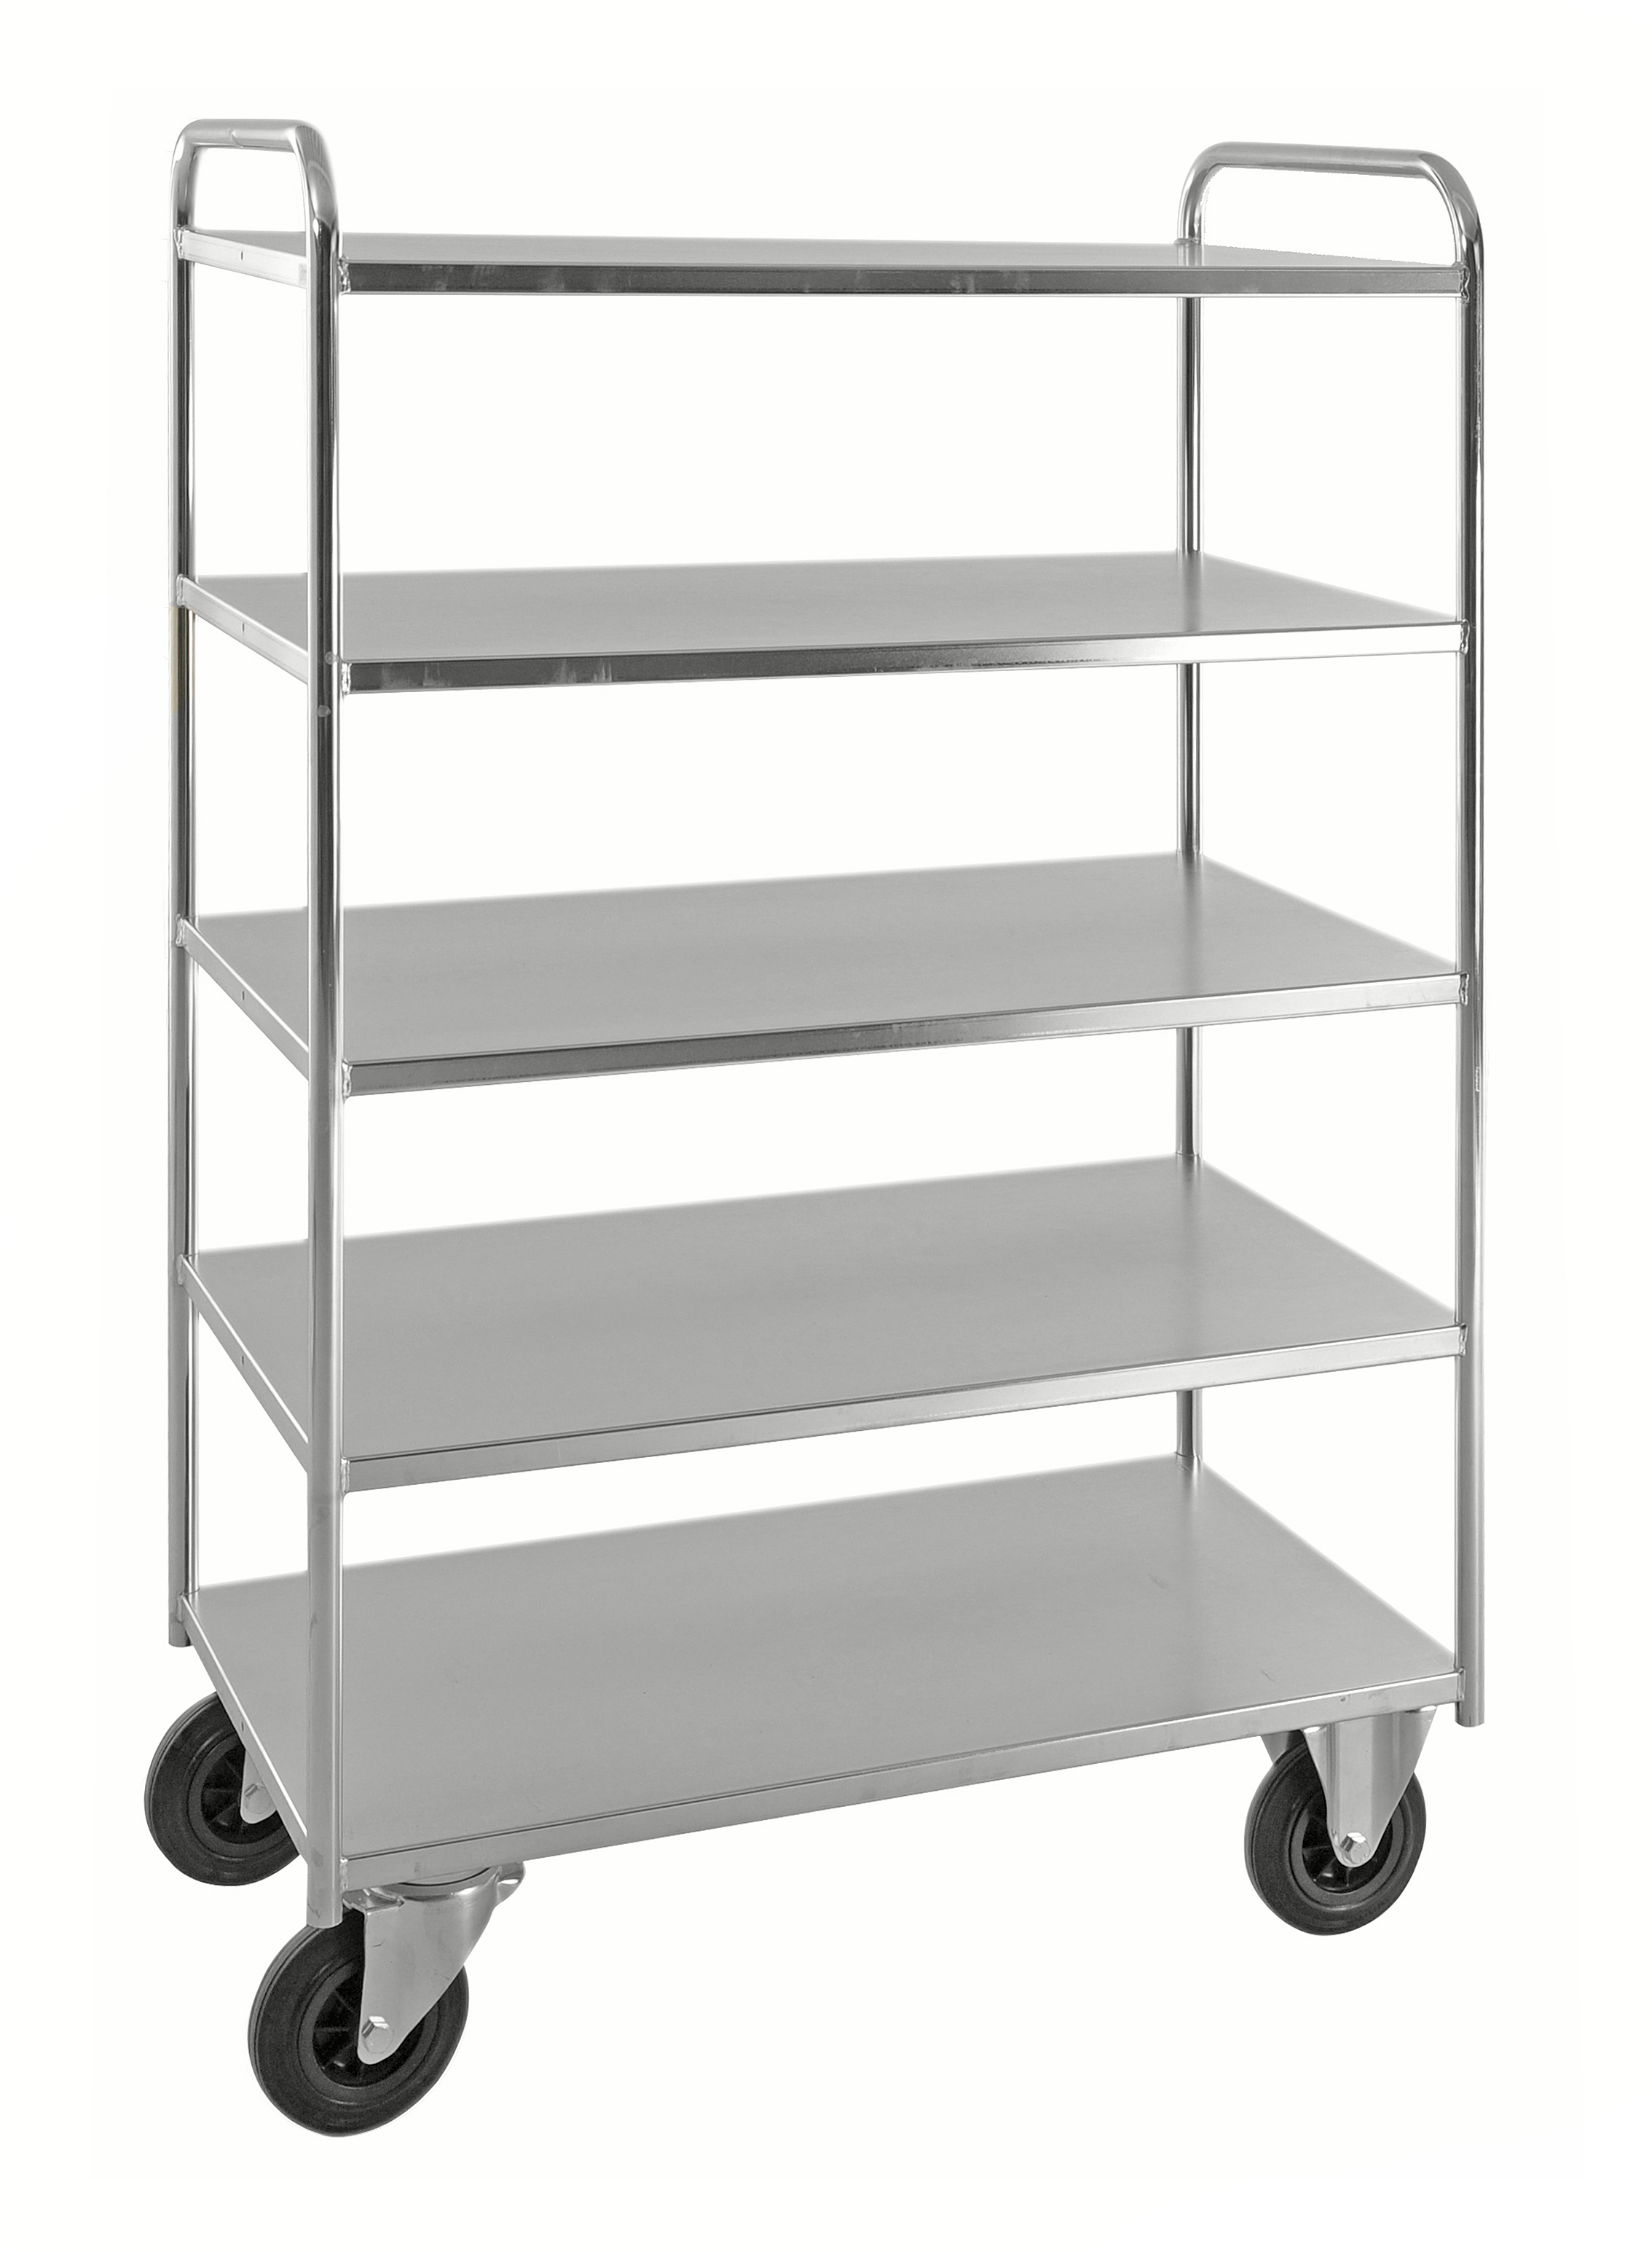 Shelf trolley 5 levels, fully welded KM4145-E